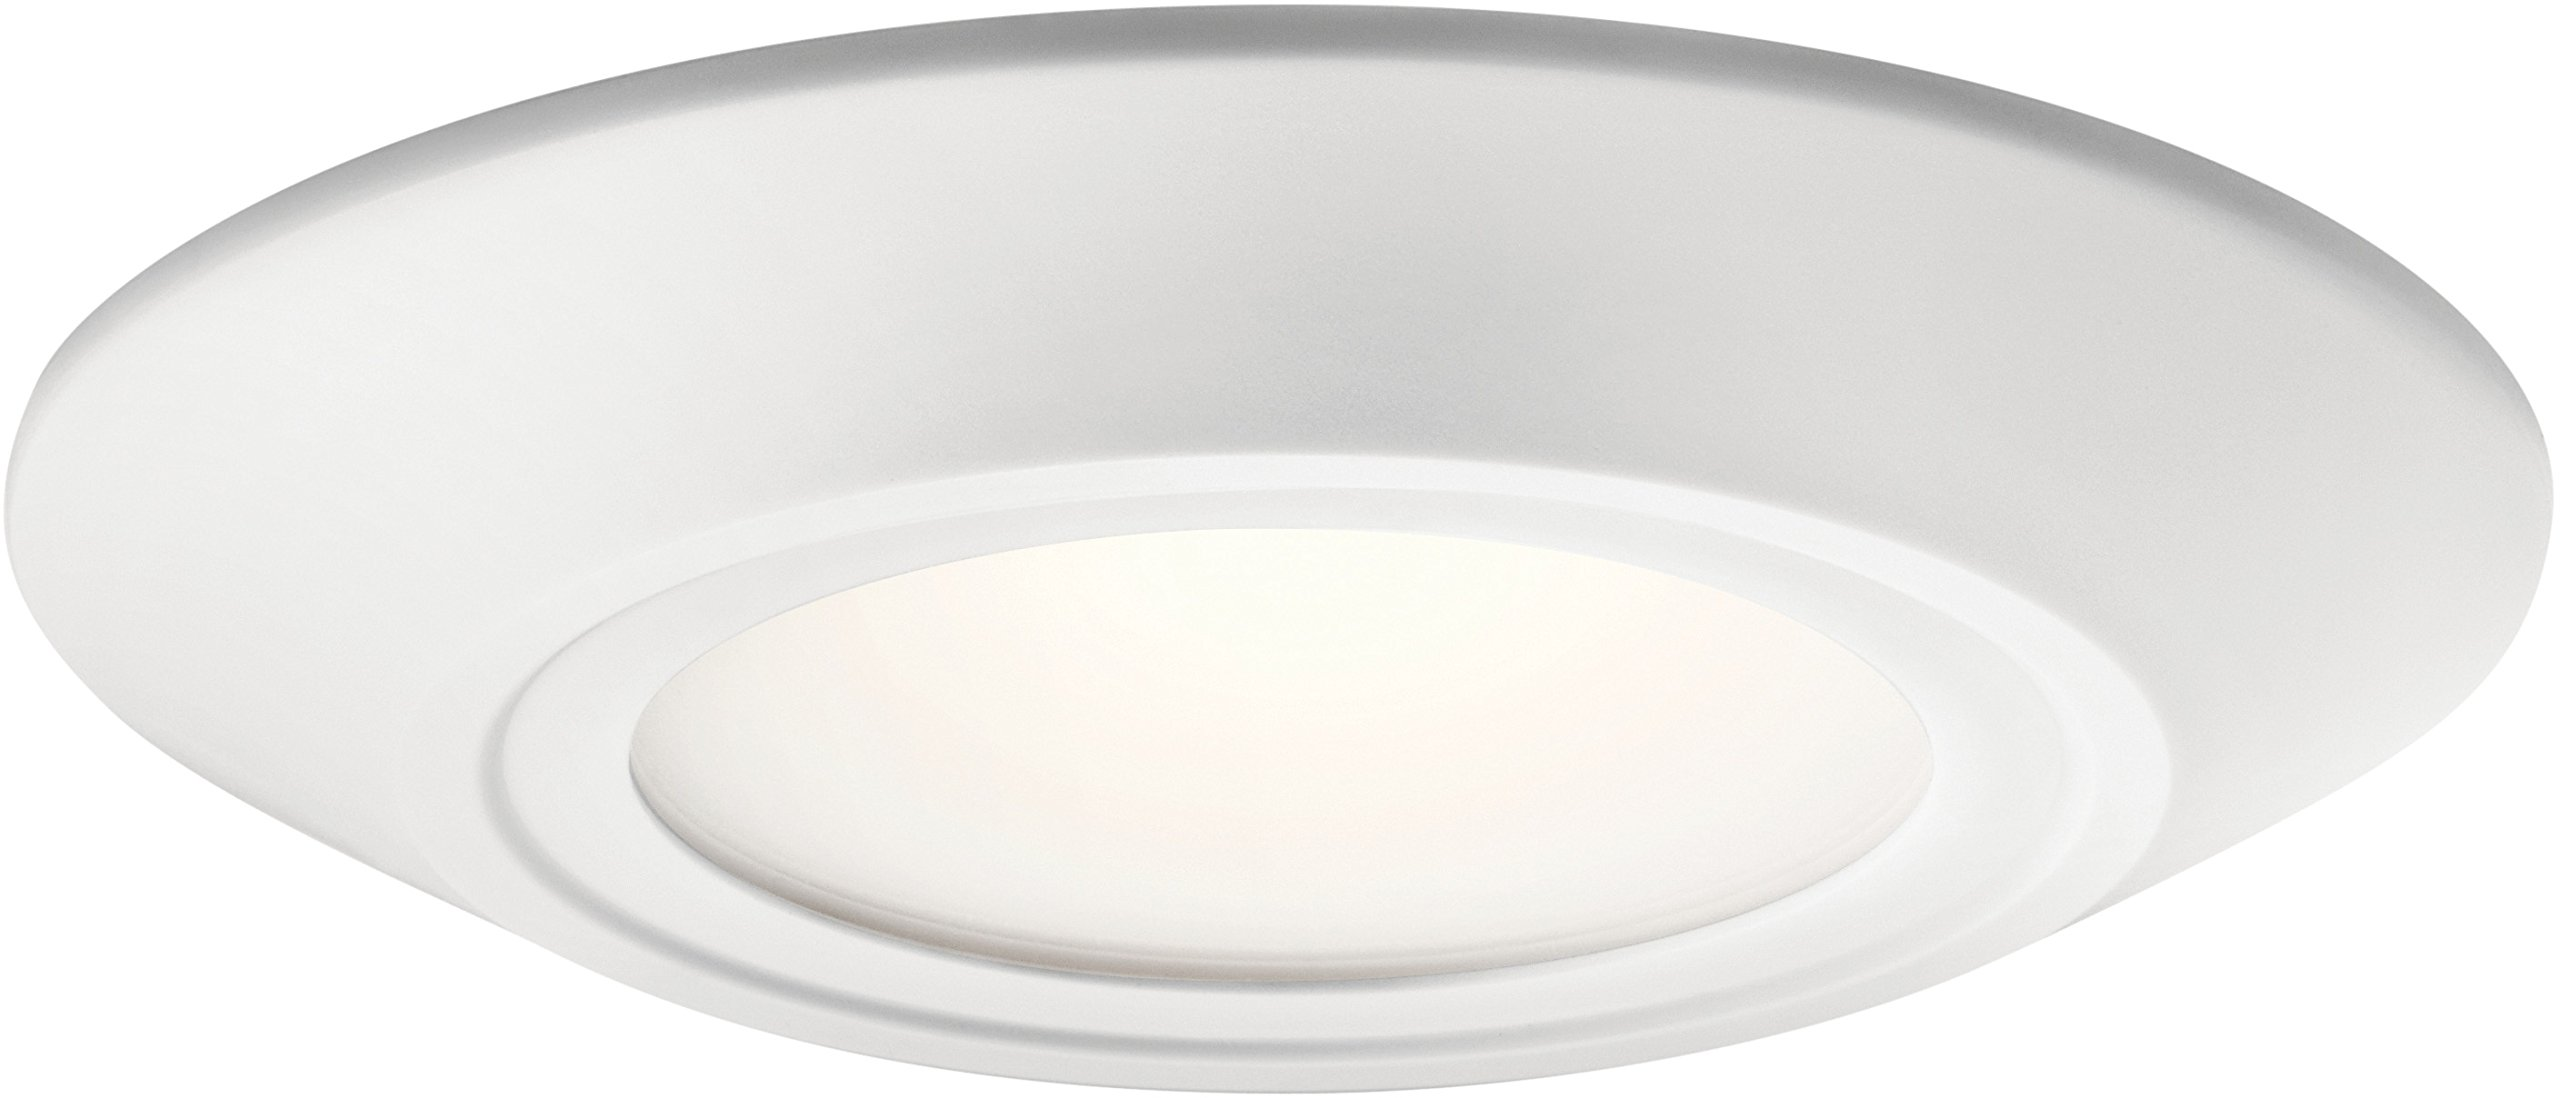 Kichler Lighting 43870WHLED27 LED Downlight from The Horizon II Collection by KICHLER (Image #1)